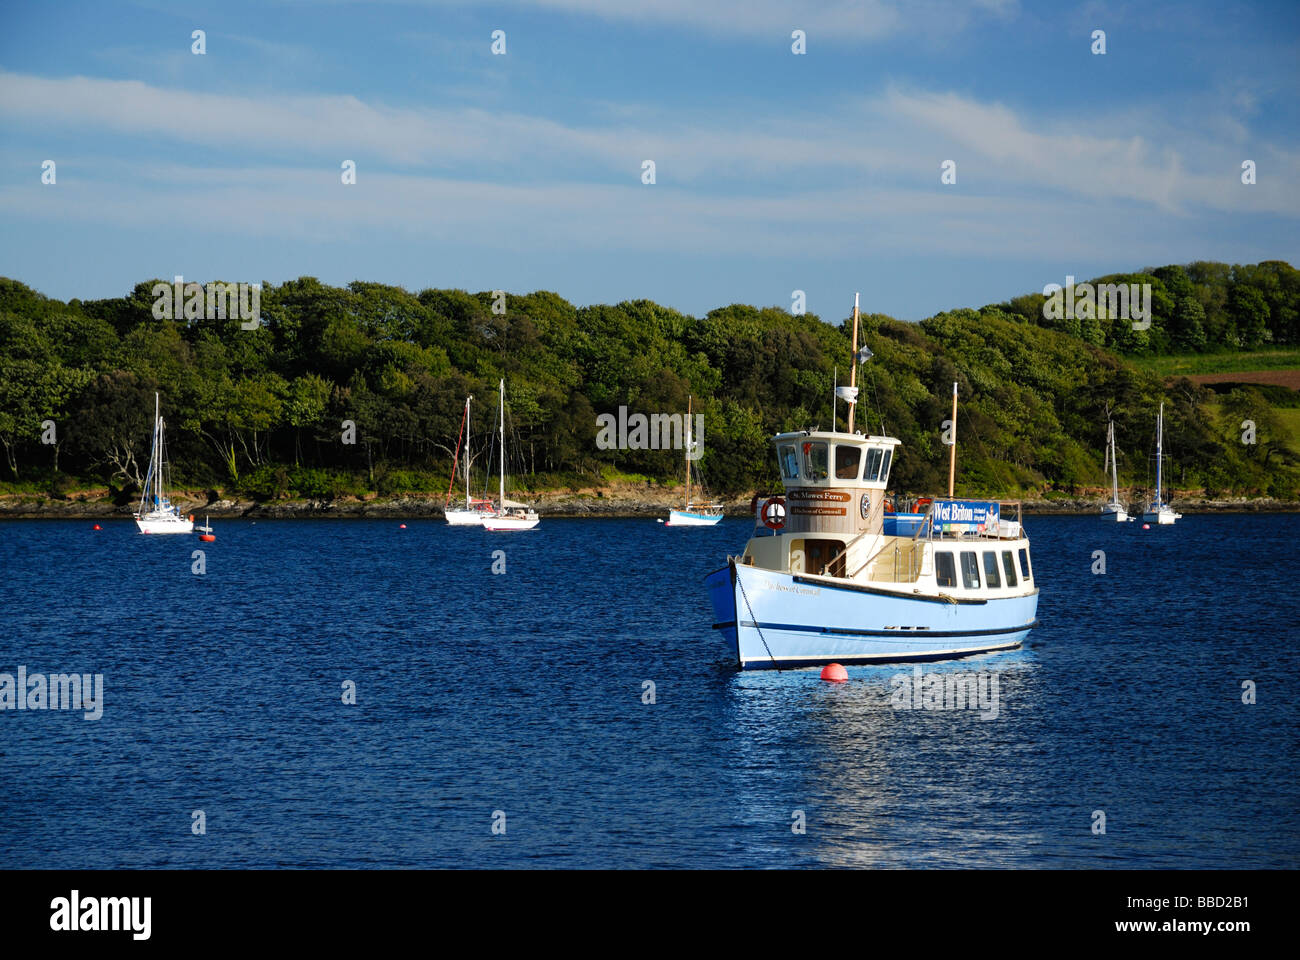 The St. Mawes - Falmouth ferry at St Mawes Harbour on the River Fal, Cornwall, UK Stock Photo